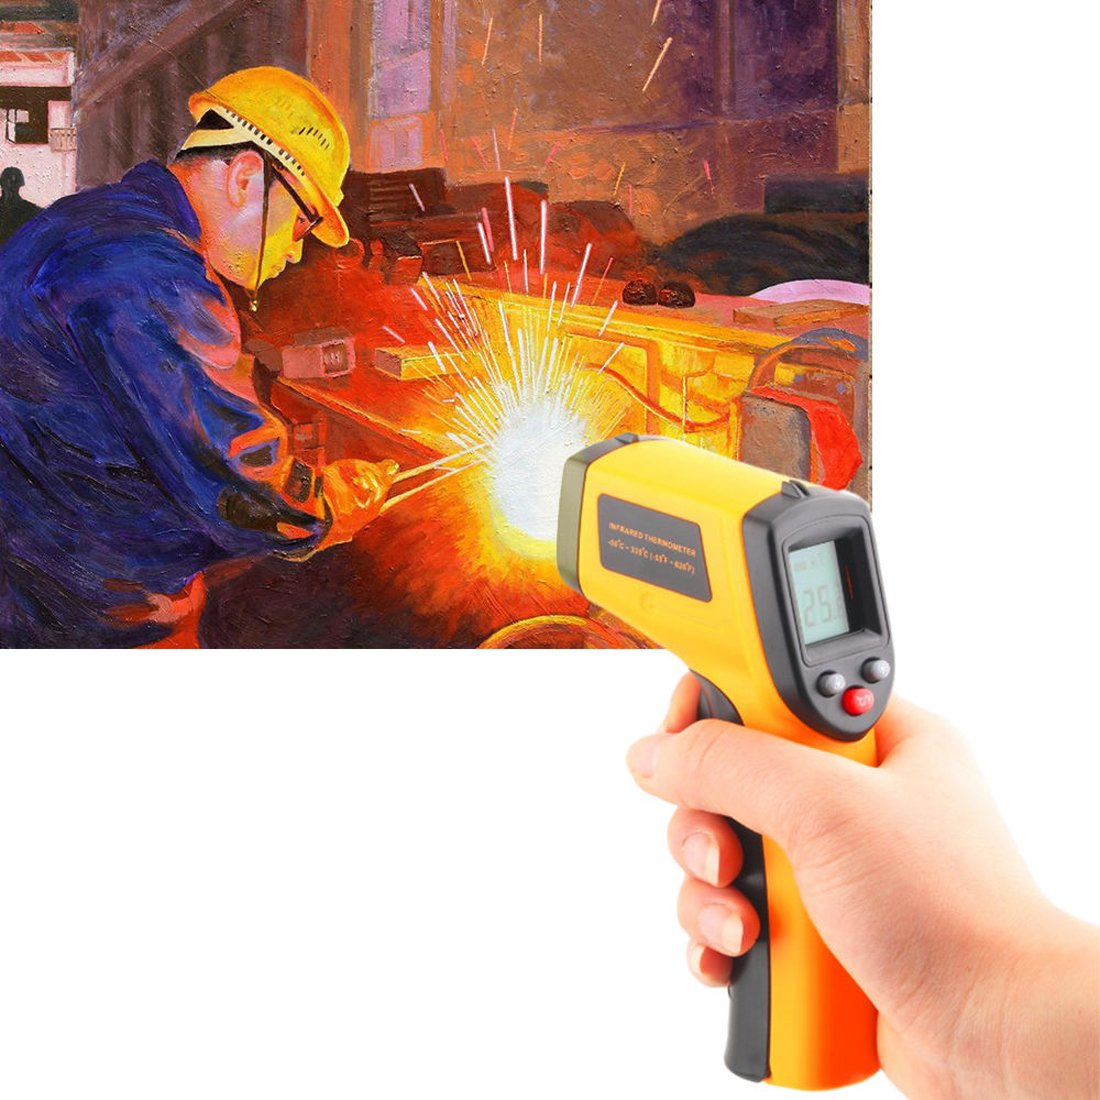 Handheld Non-Contact Digital Laser IR Infrared Thermometer Temperature Gun -58℉ - 626℉ for Kitchen Cooking BBQ Automotive Industrial,Accuracy Reading HD Backlit LCD Display hanhefen